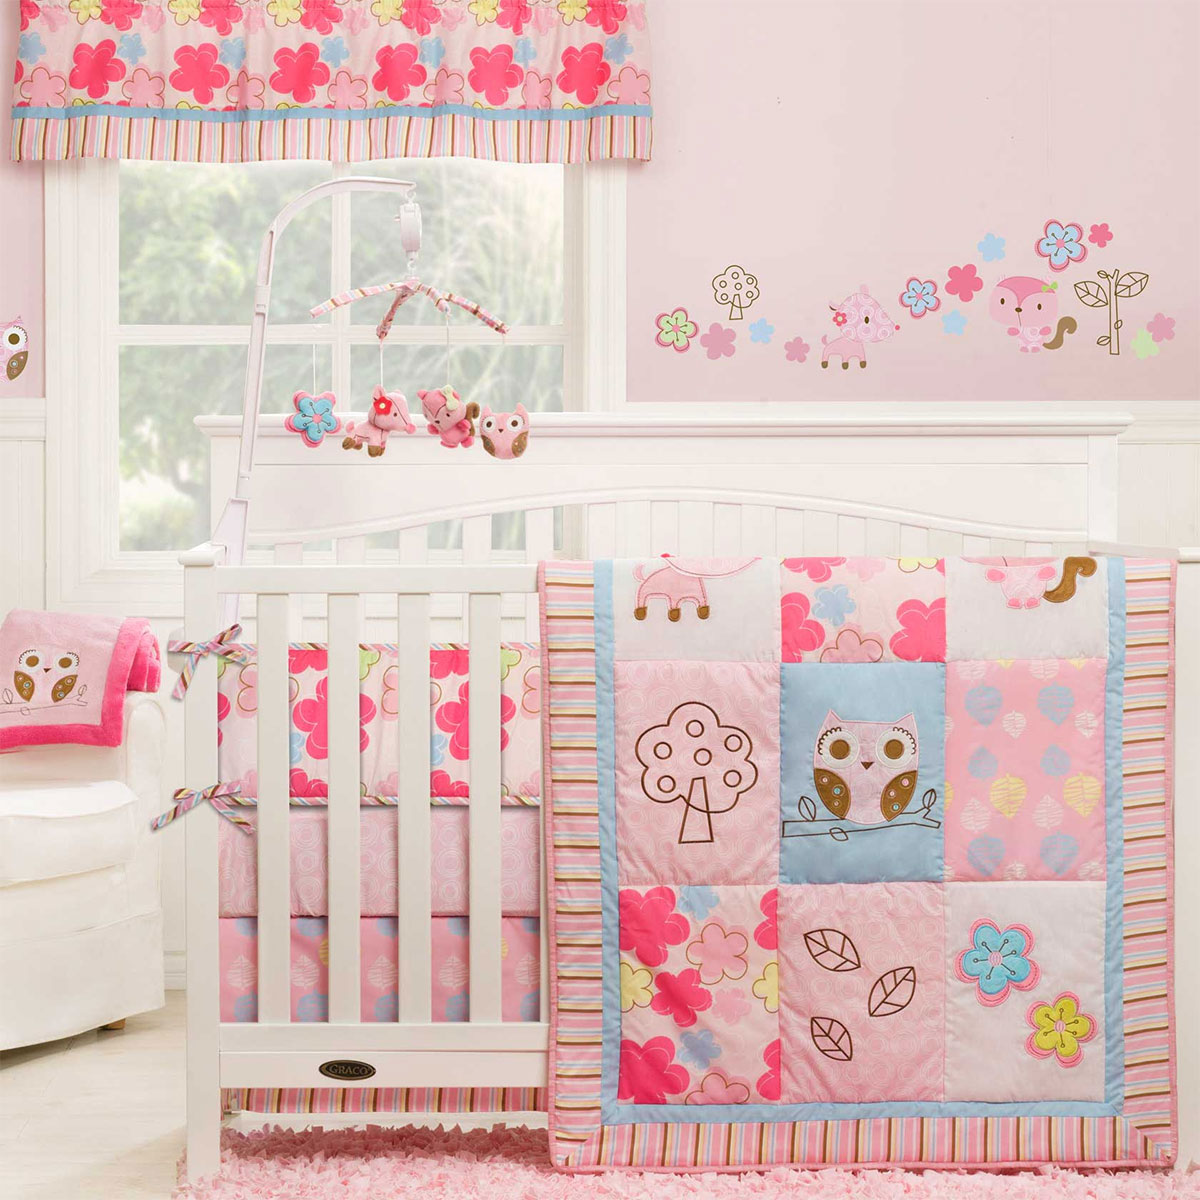 graco high chair coupon extended height office girl woodland 4 piece crib bedding set by kidsline